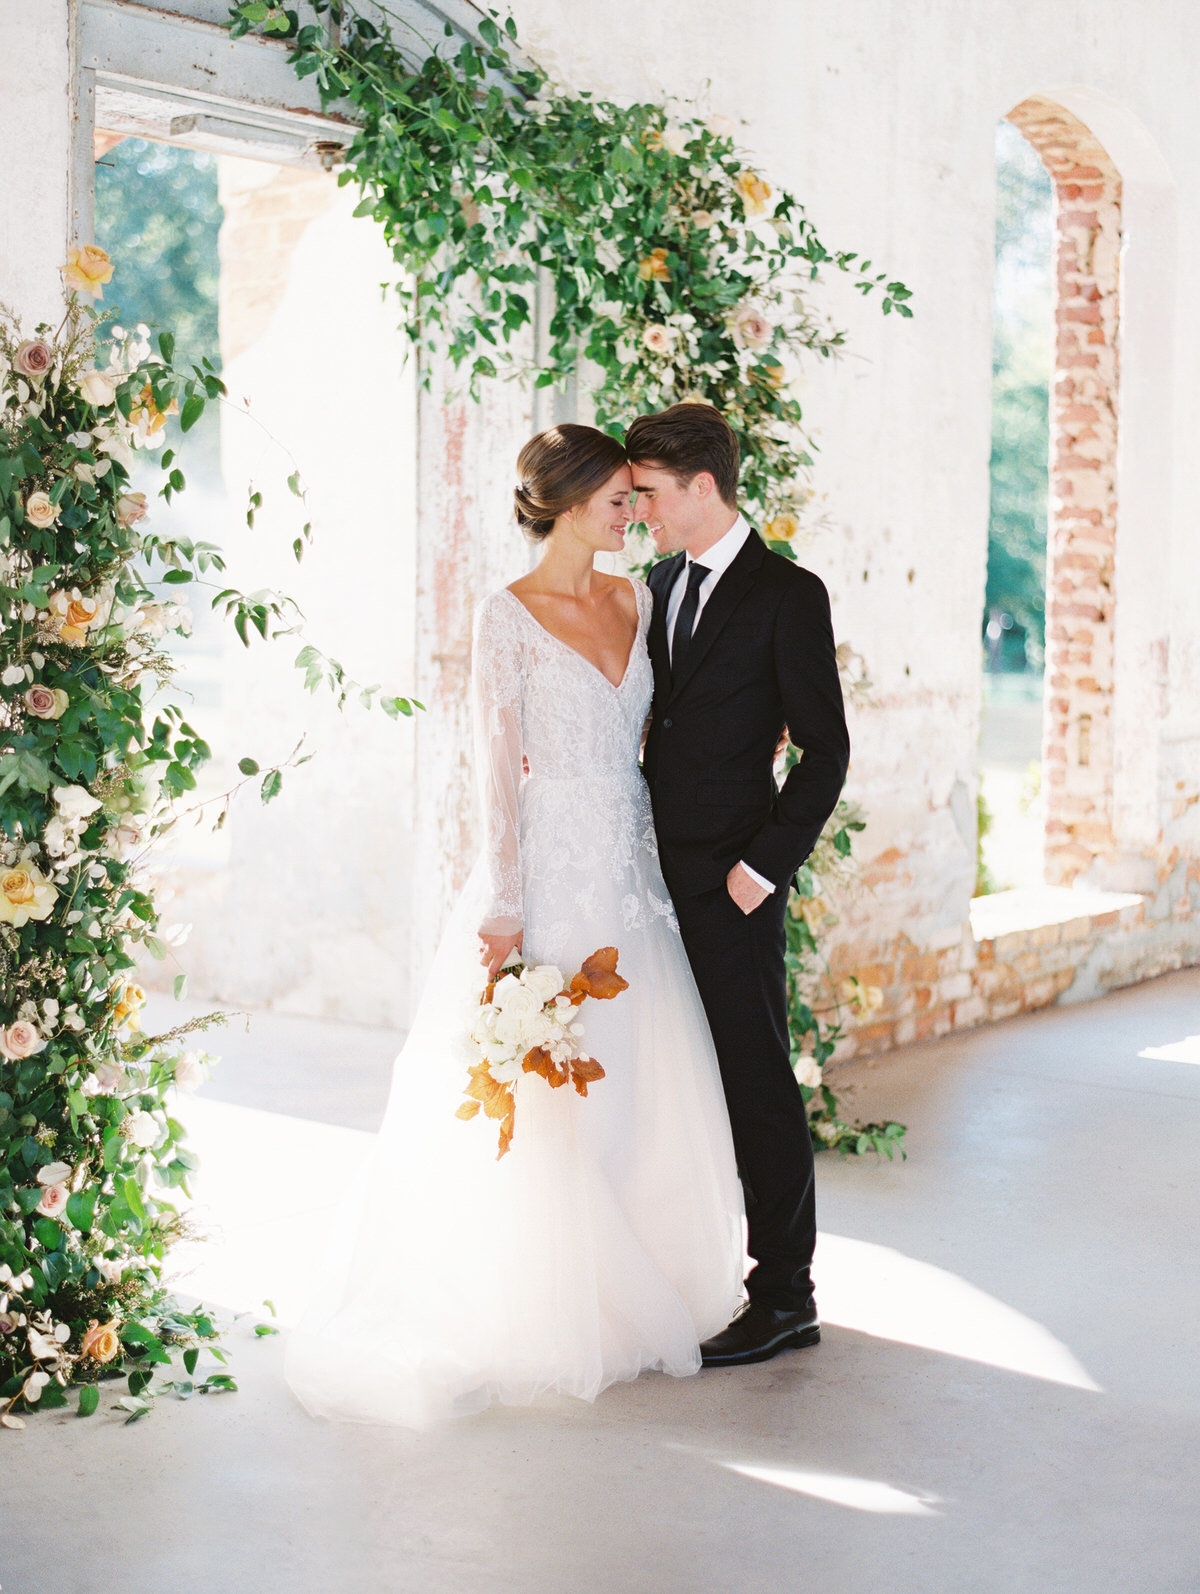 A North Carolina fine art film wedding photographer captures a couple posing during their fall Providence Cotton Mill wedding. As featured on Magnolia Rouge